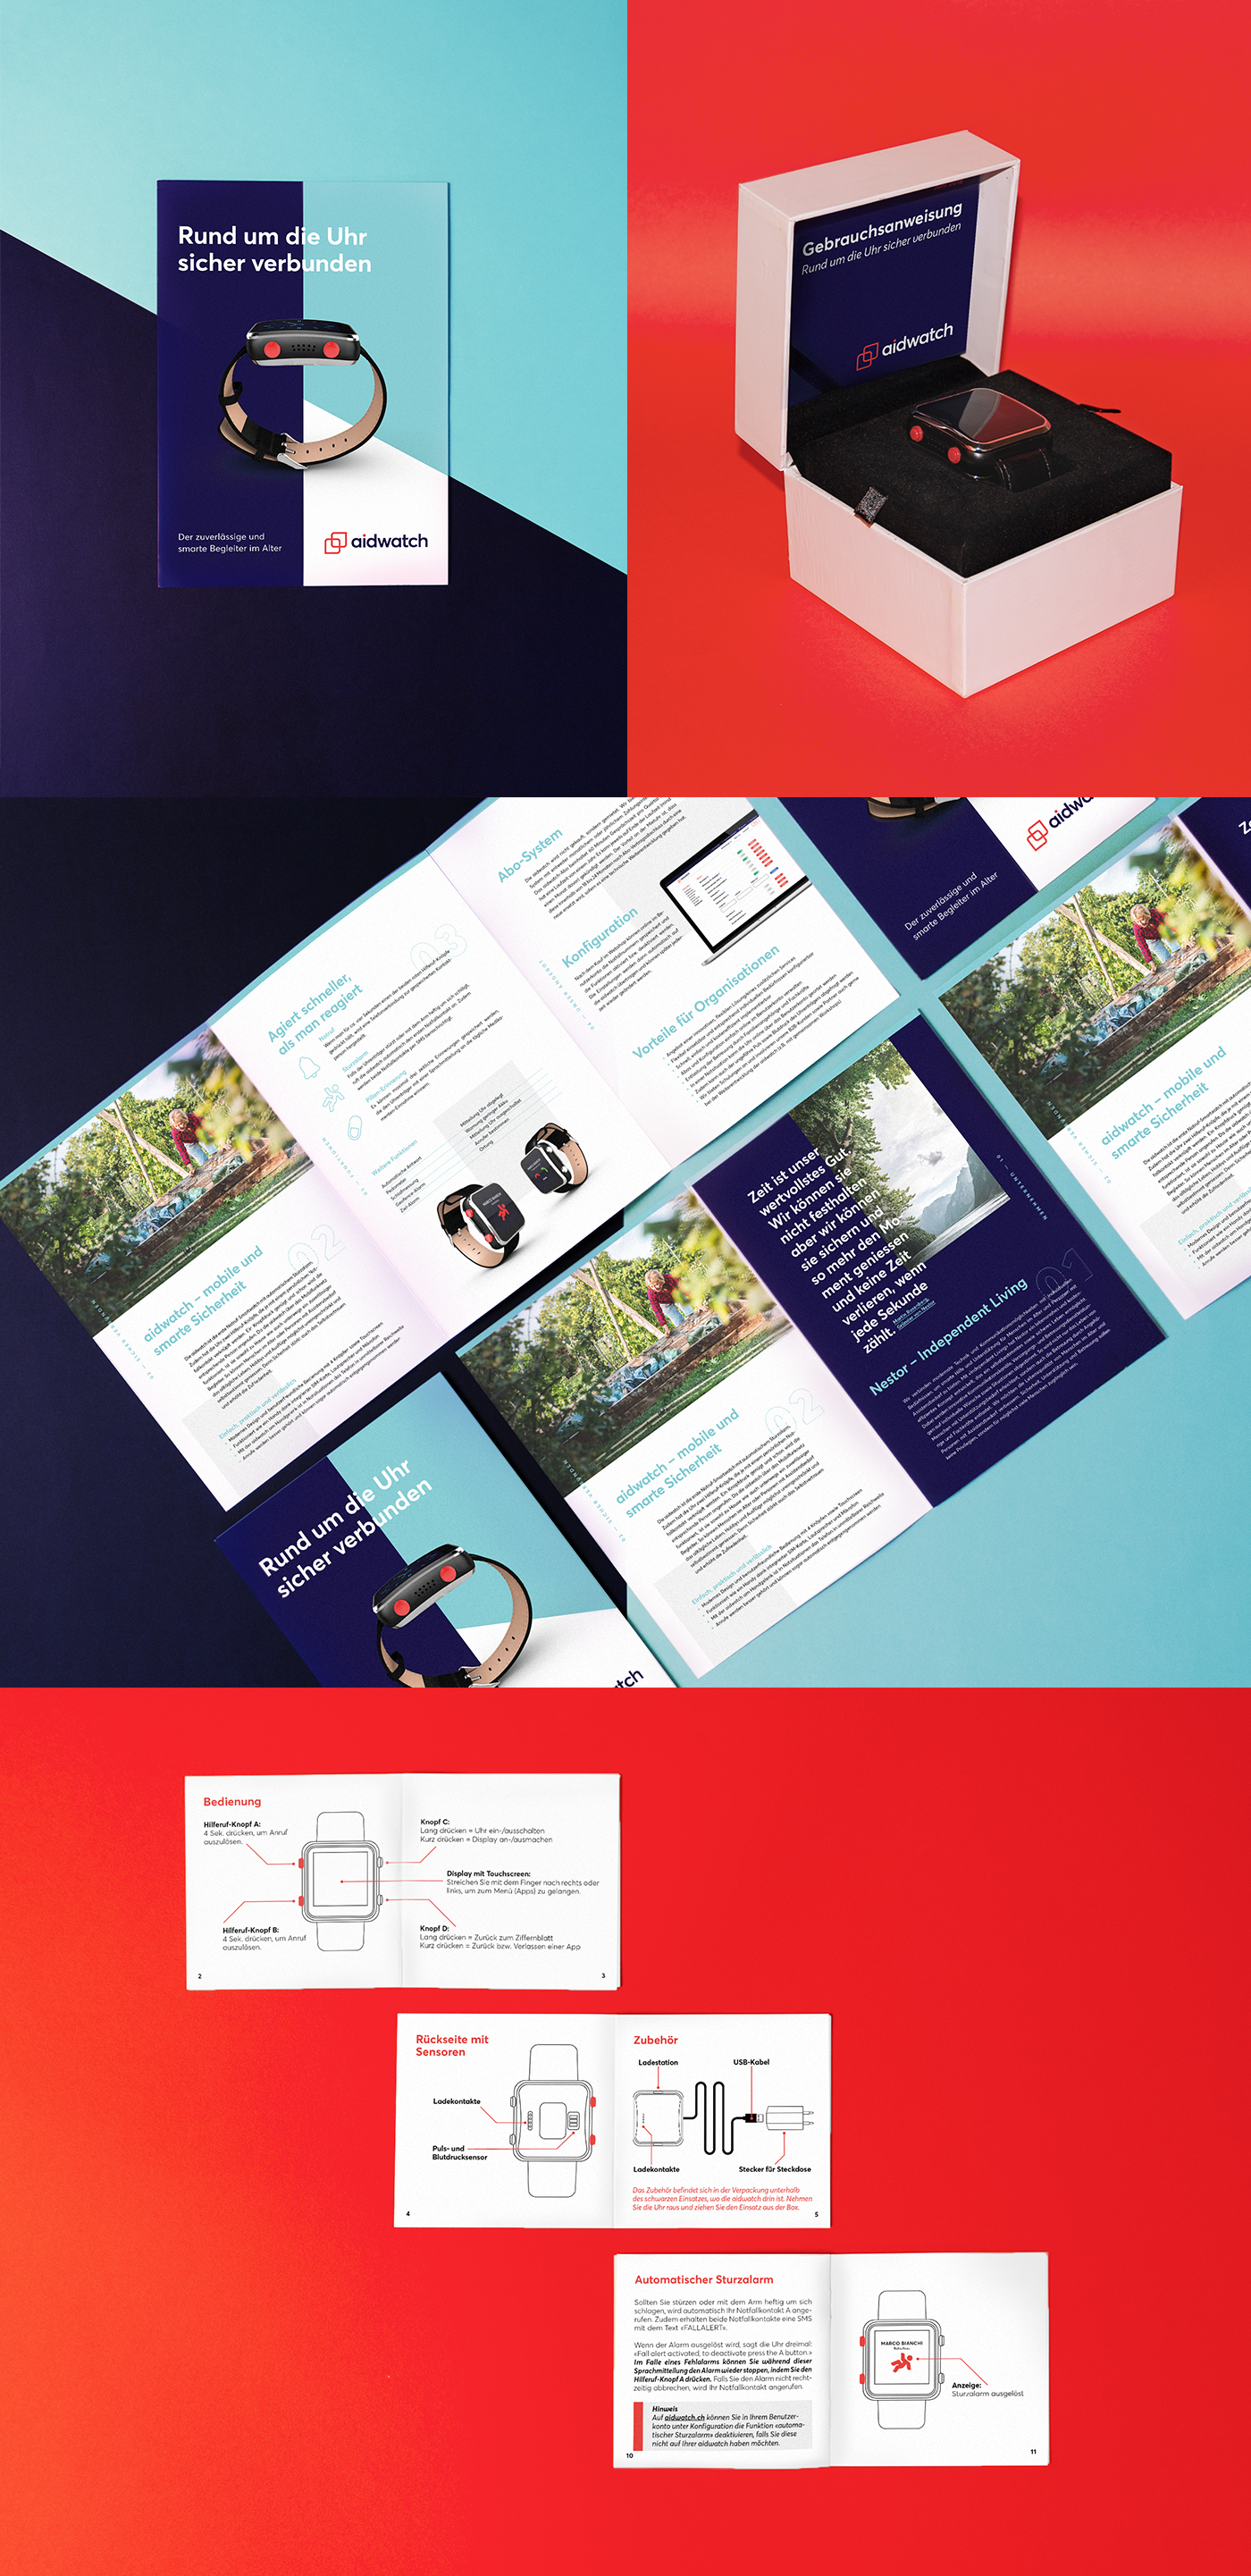 aidwatch_STATIONARY_FLYER_PACKAGING_DESIGN